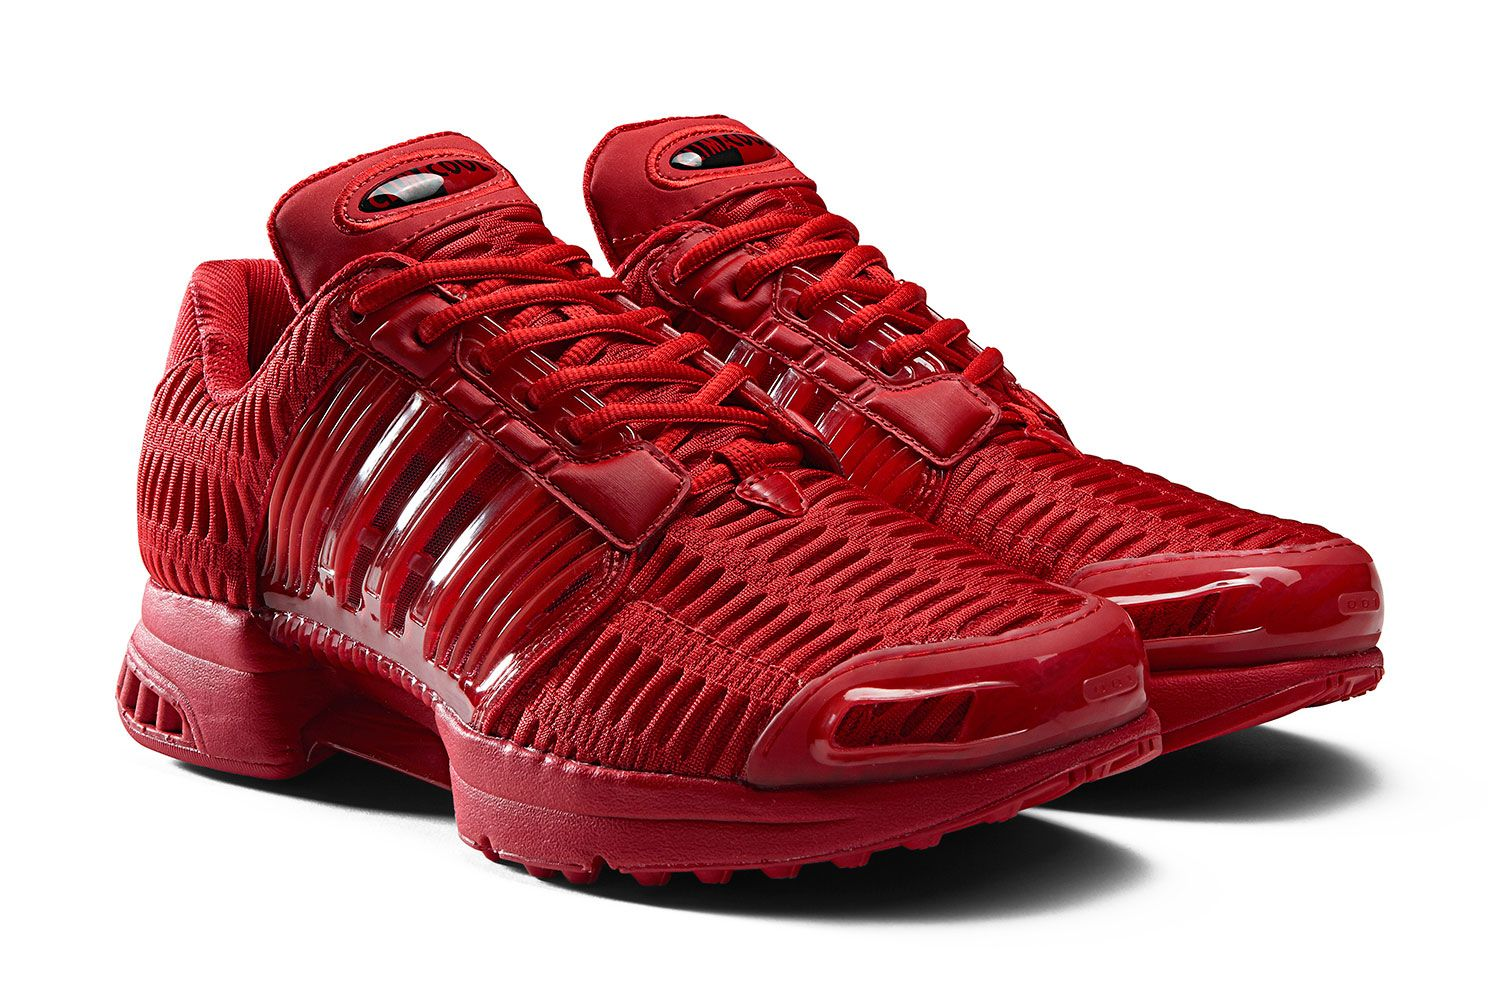 adidas' Climacool 1 Returns in 4 Tonal Looks for Spring | Adidas ...